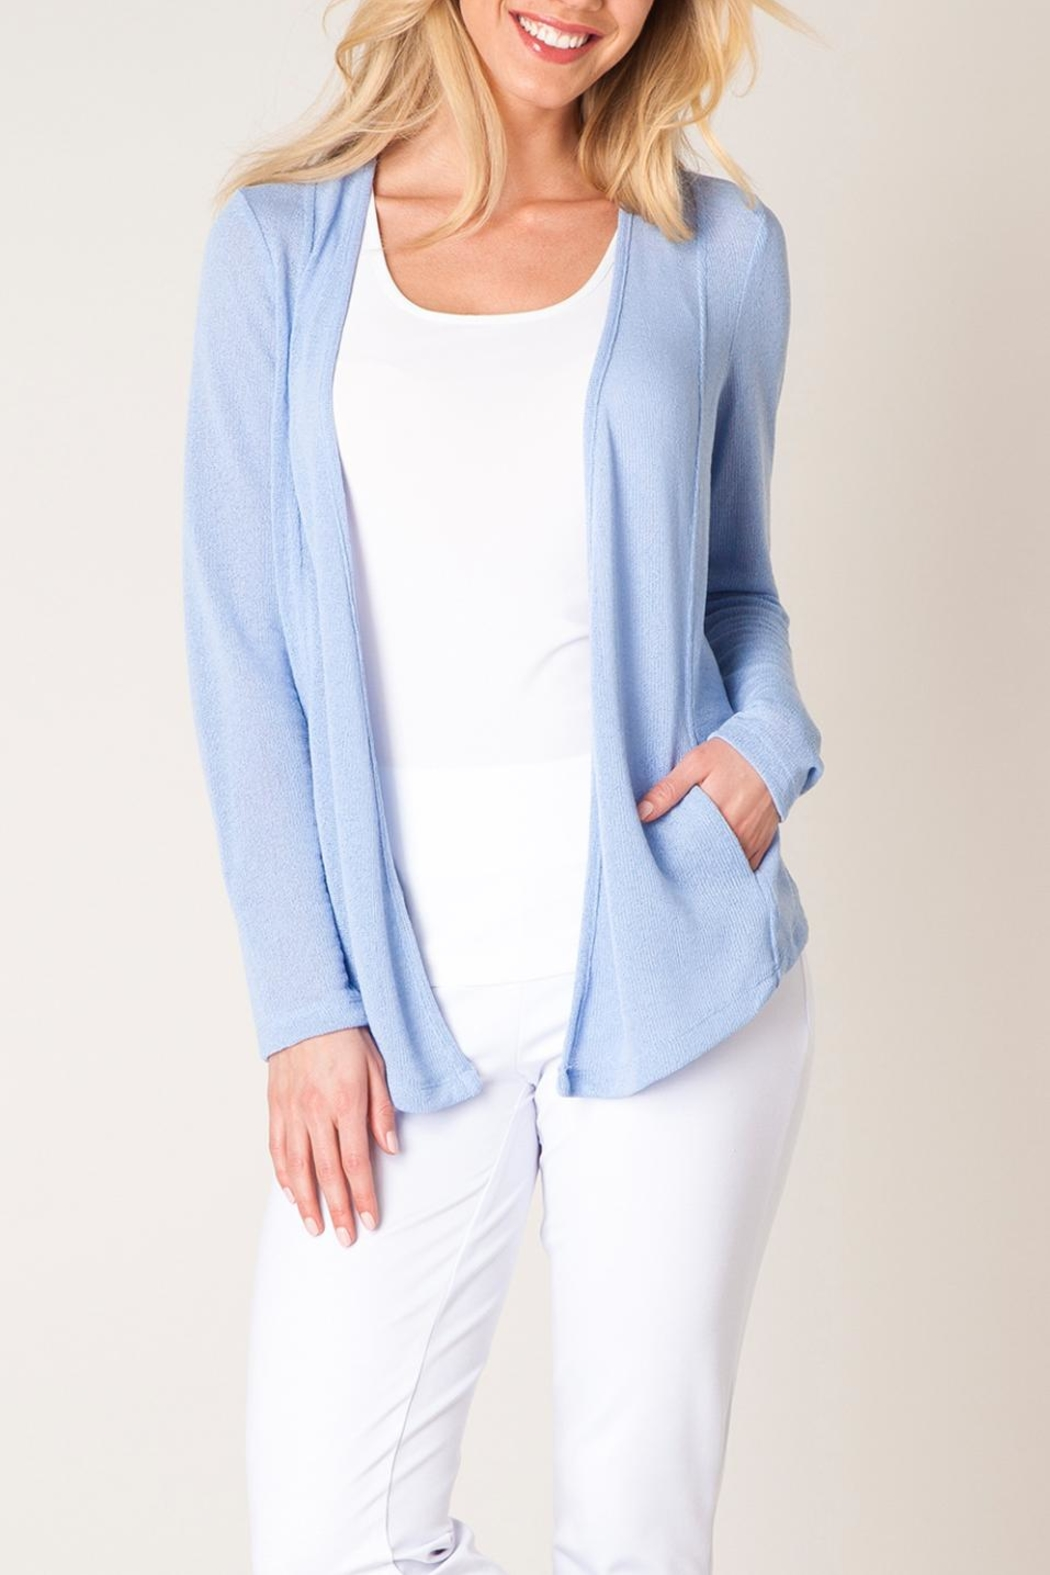 Colletta Pastel Blue Sweater - Main Image